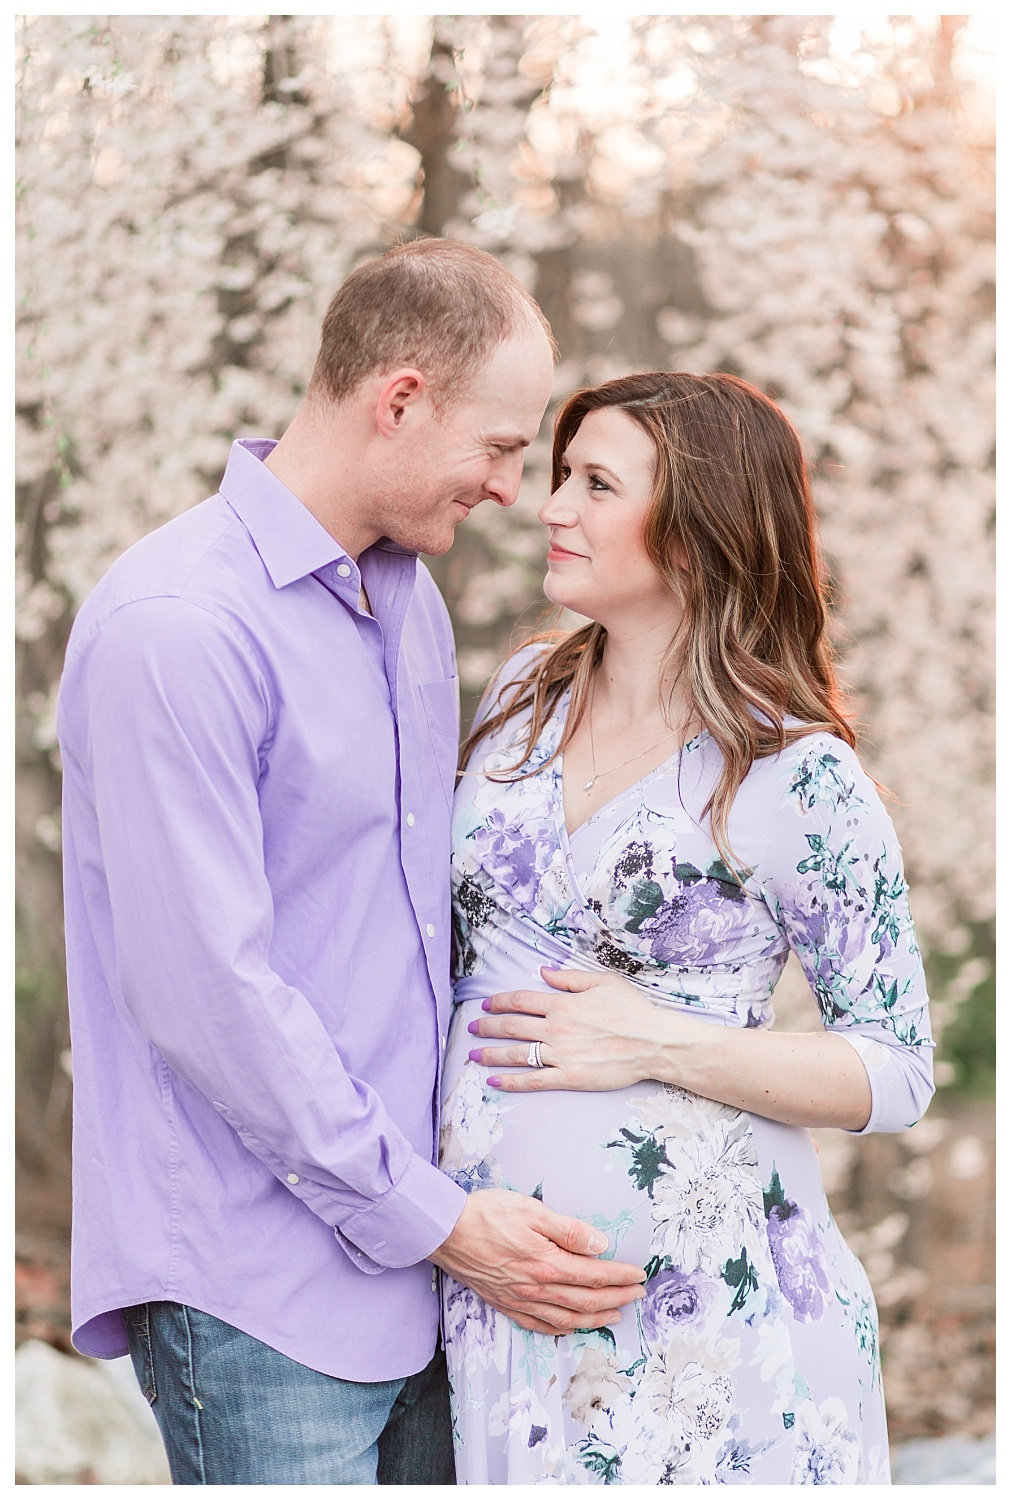 spring maternity session blossoms